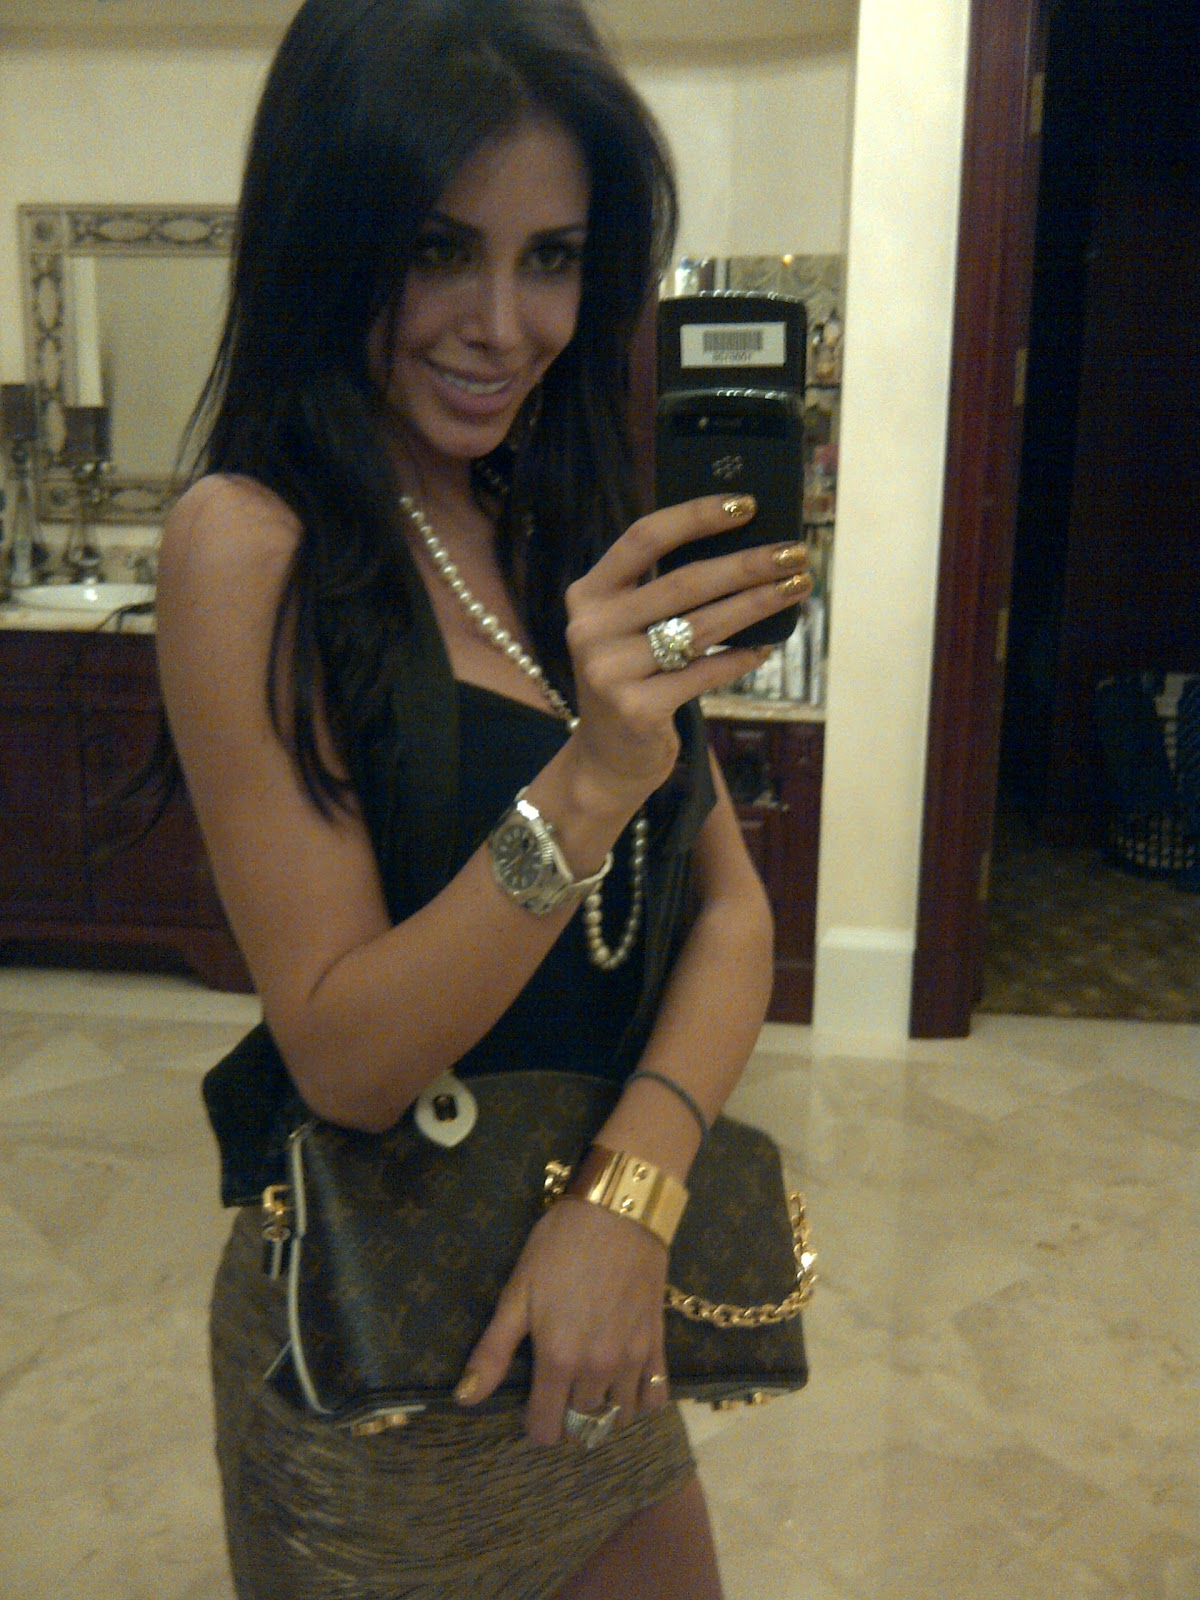 Daily mirror pics finally she is pregnant Jennifer stano